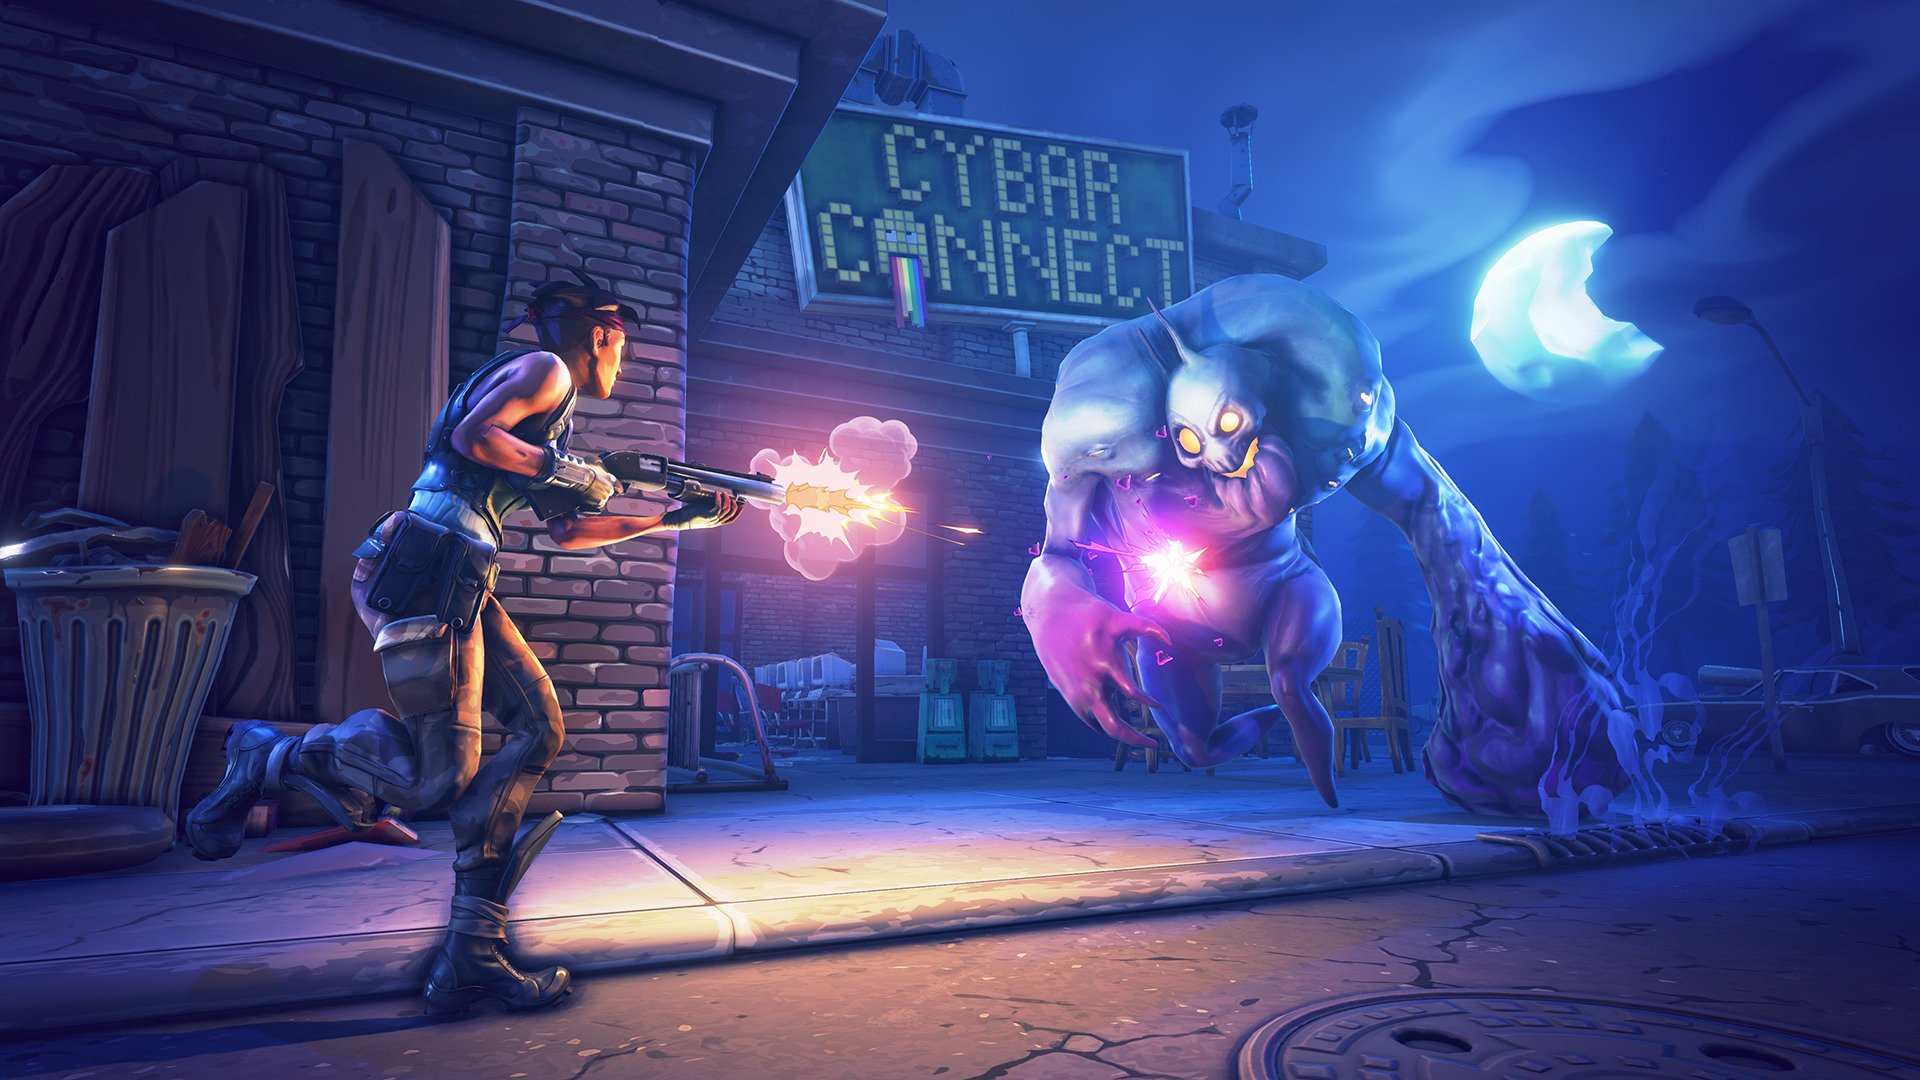 Fortnite Shooter Multijugador Gratis Para Pc De Calidad Pc